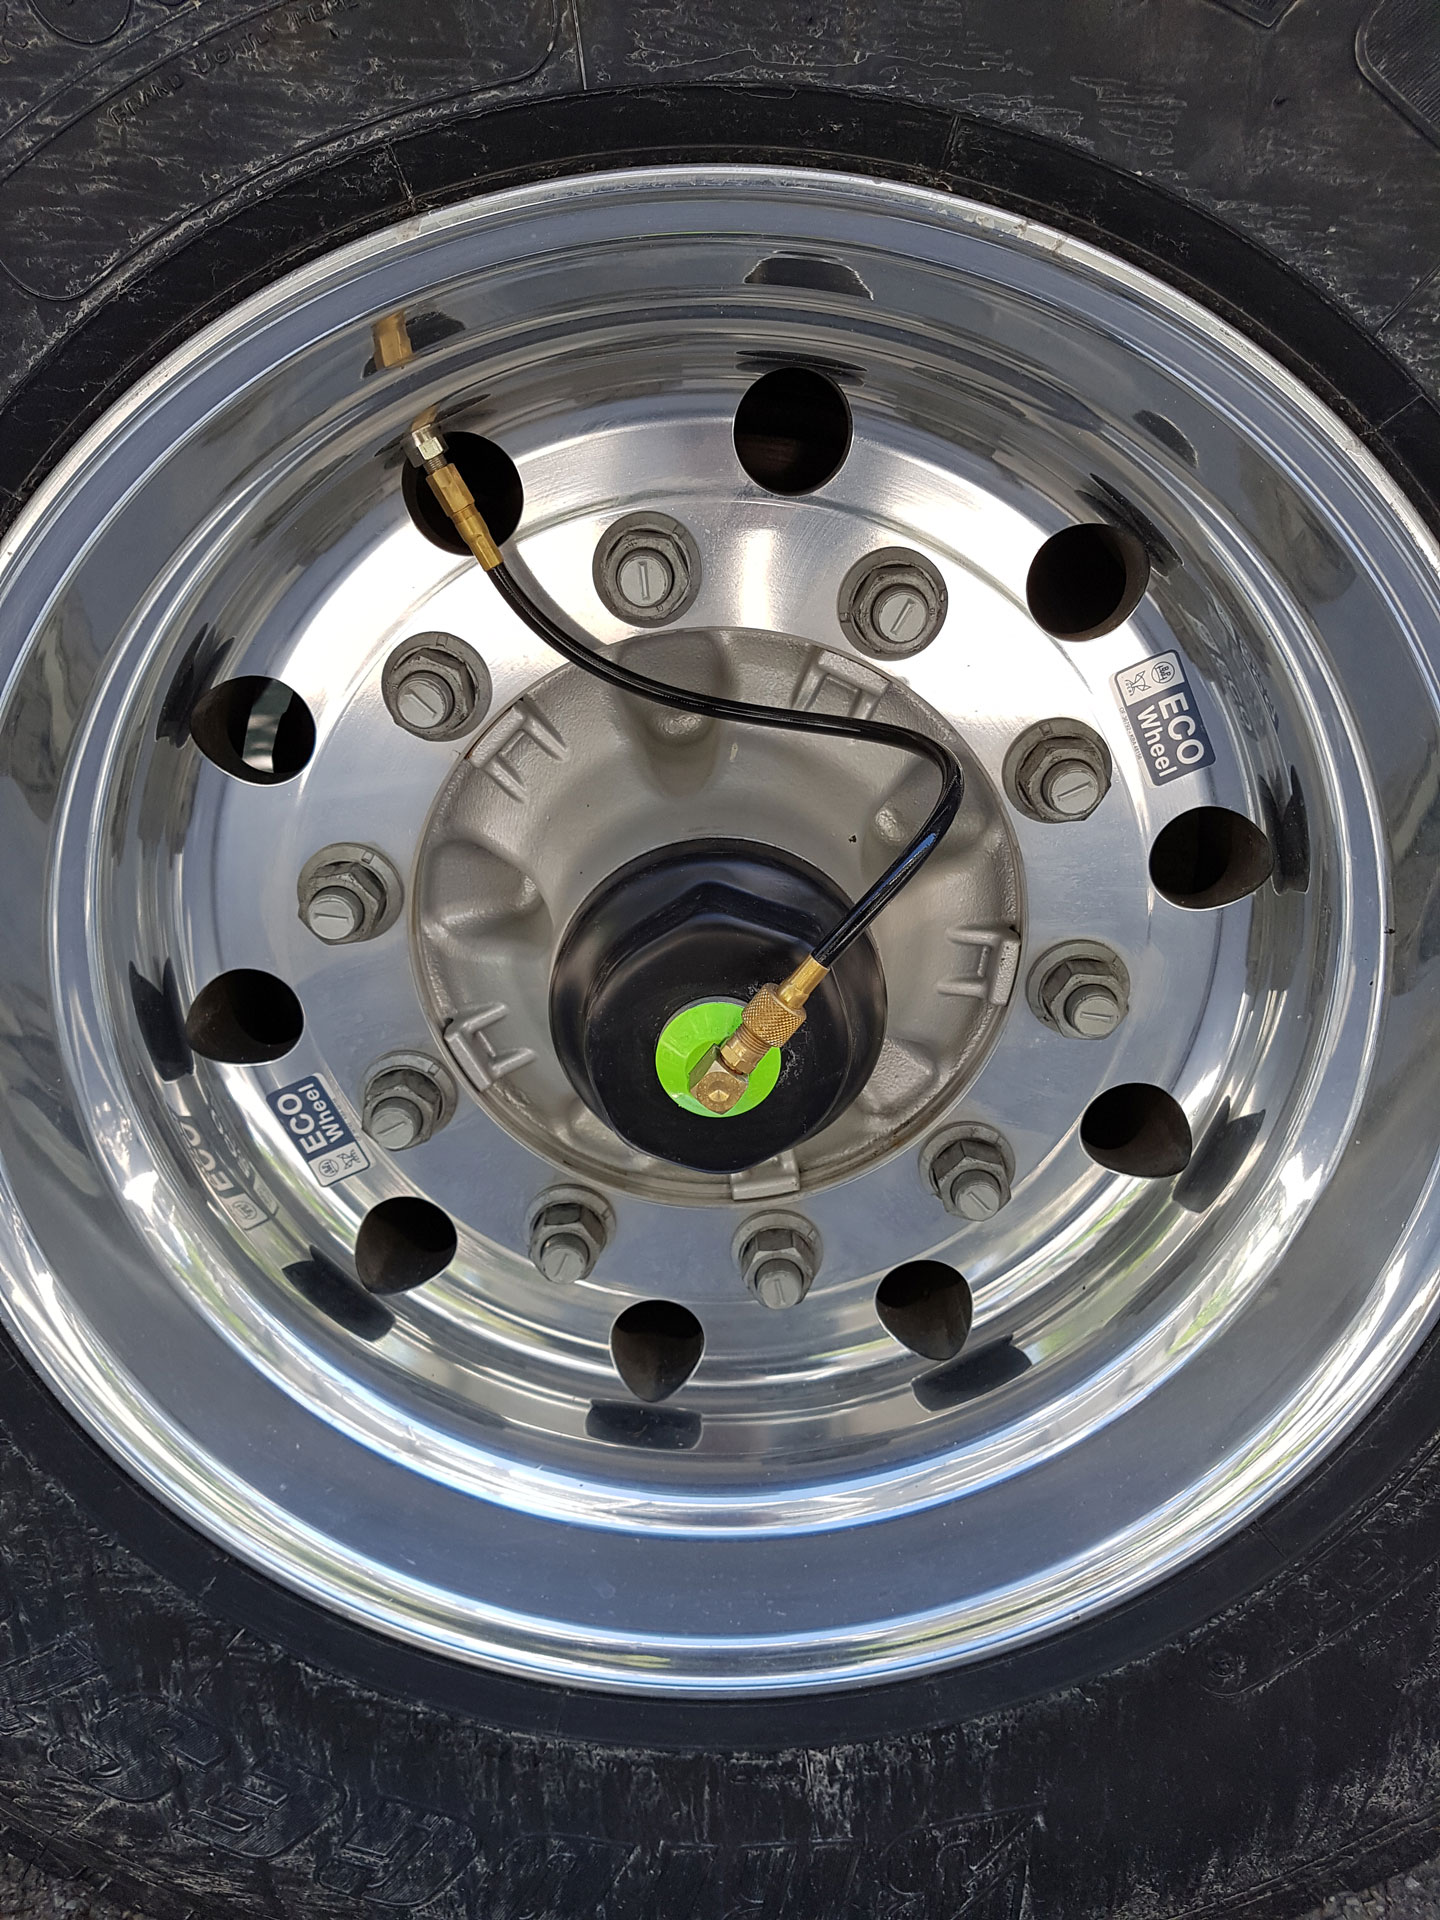 PSI Tyre Auto Inflation System